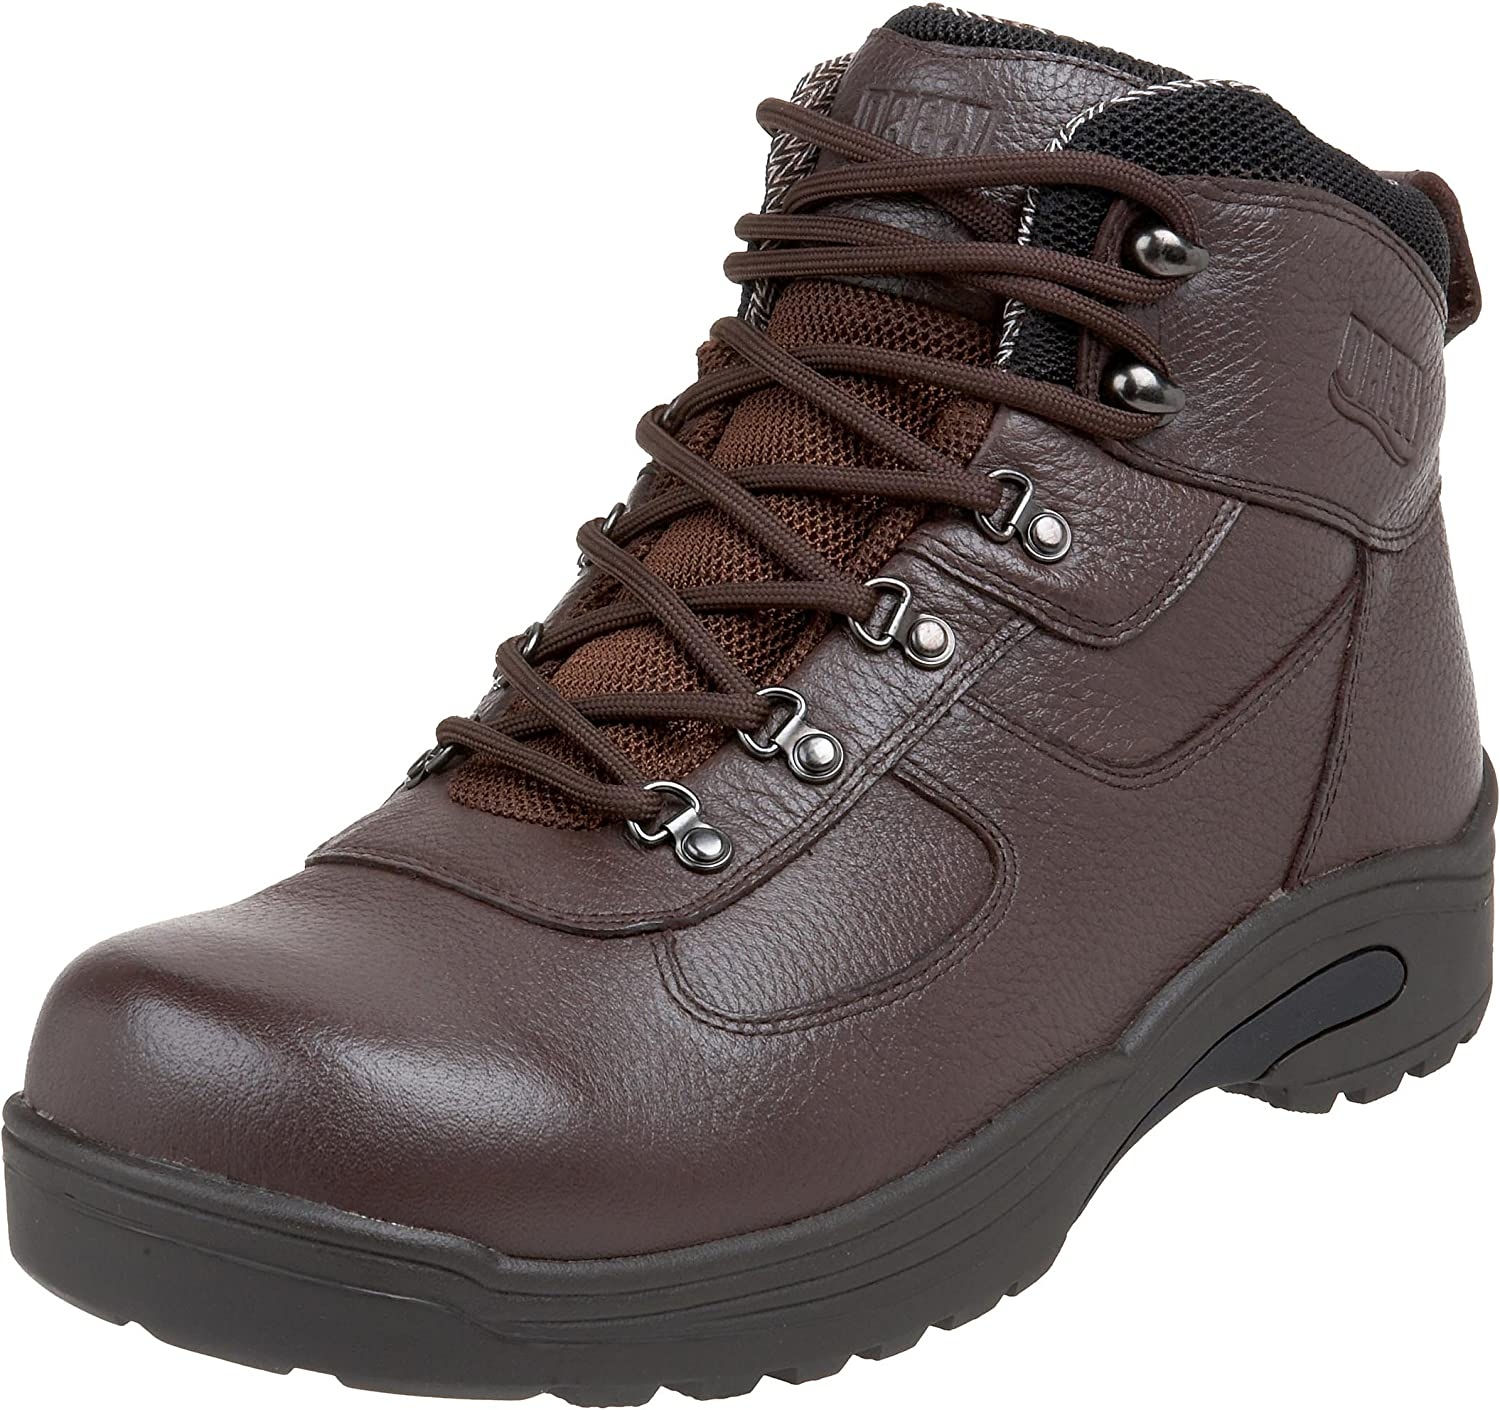 Drew Shoe Men s Rockford Boot,Dark Brown,15 4W US